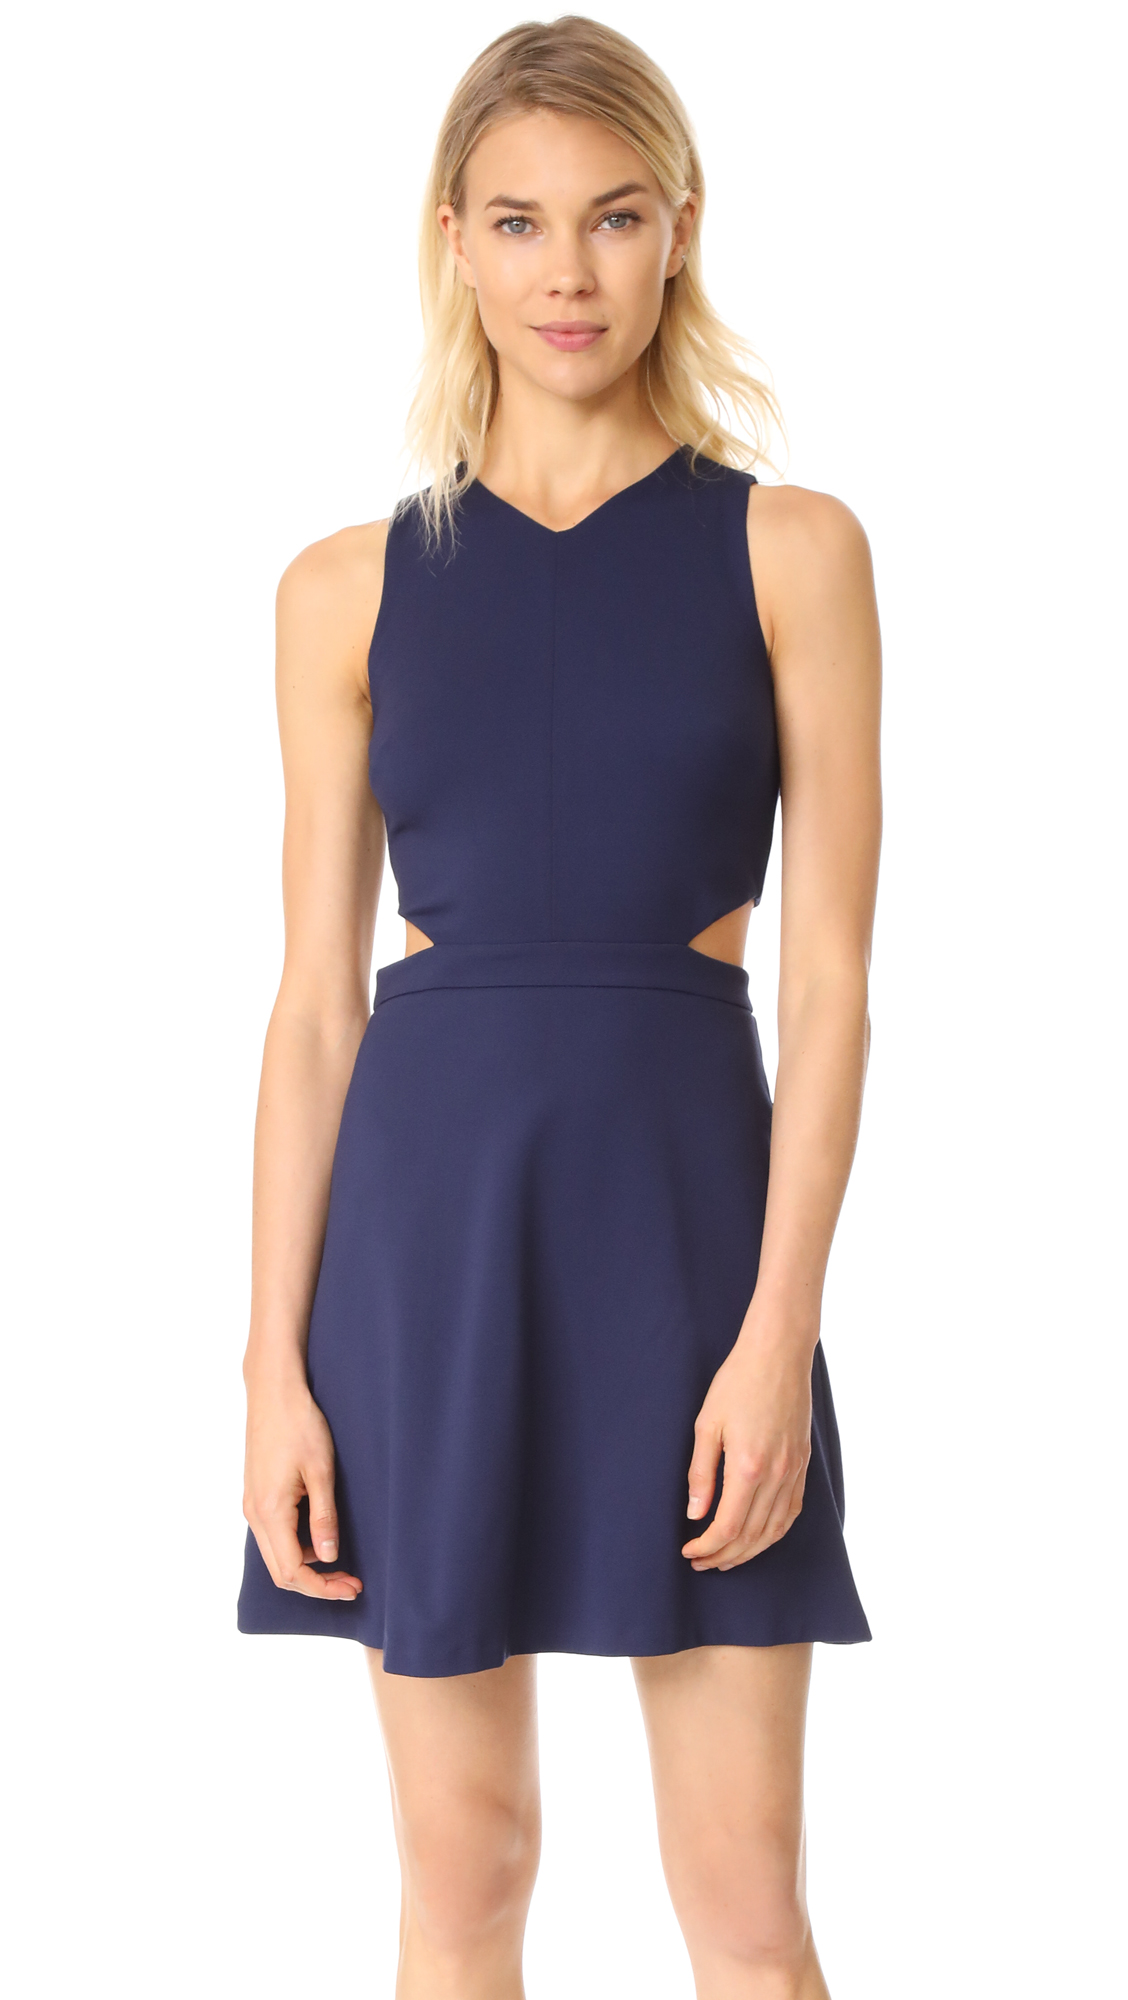 Ali & Jay Making Waves Mini Dress - Navy